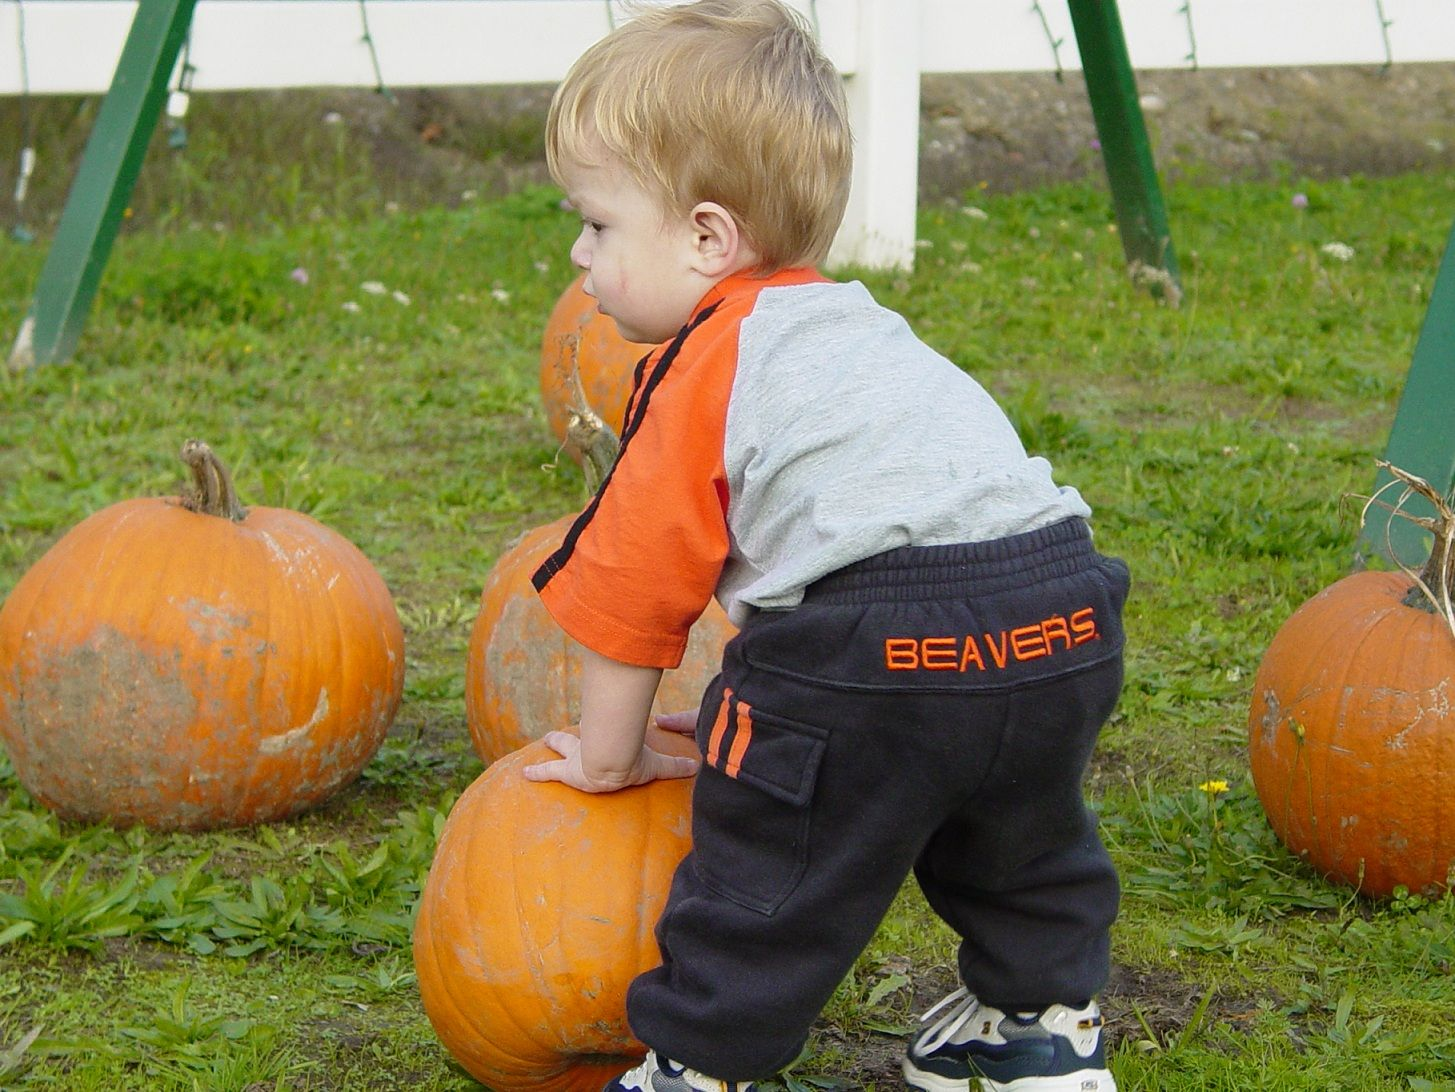 Young Beaver Fan Searching For The Perfect Orange Pumpkin